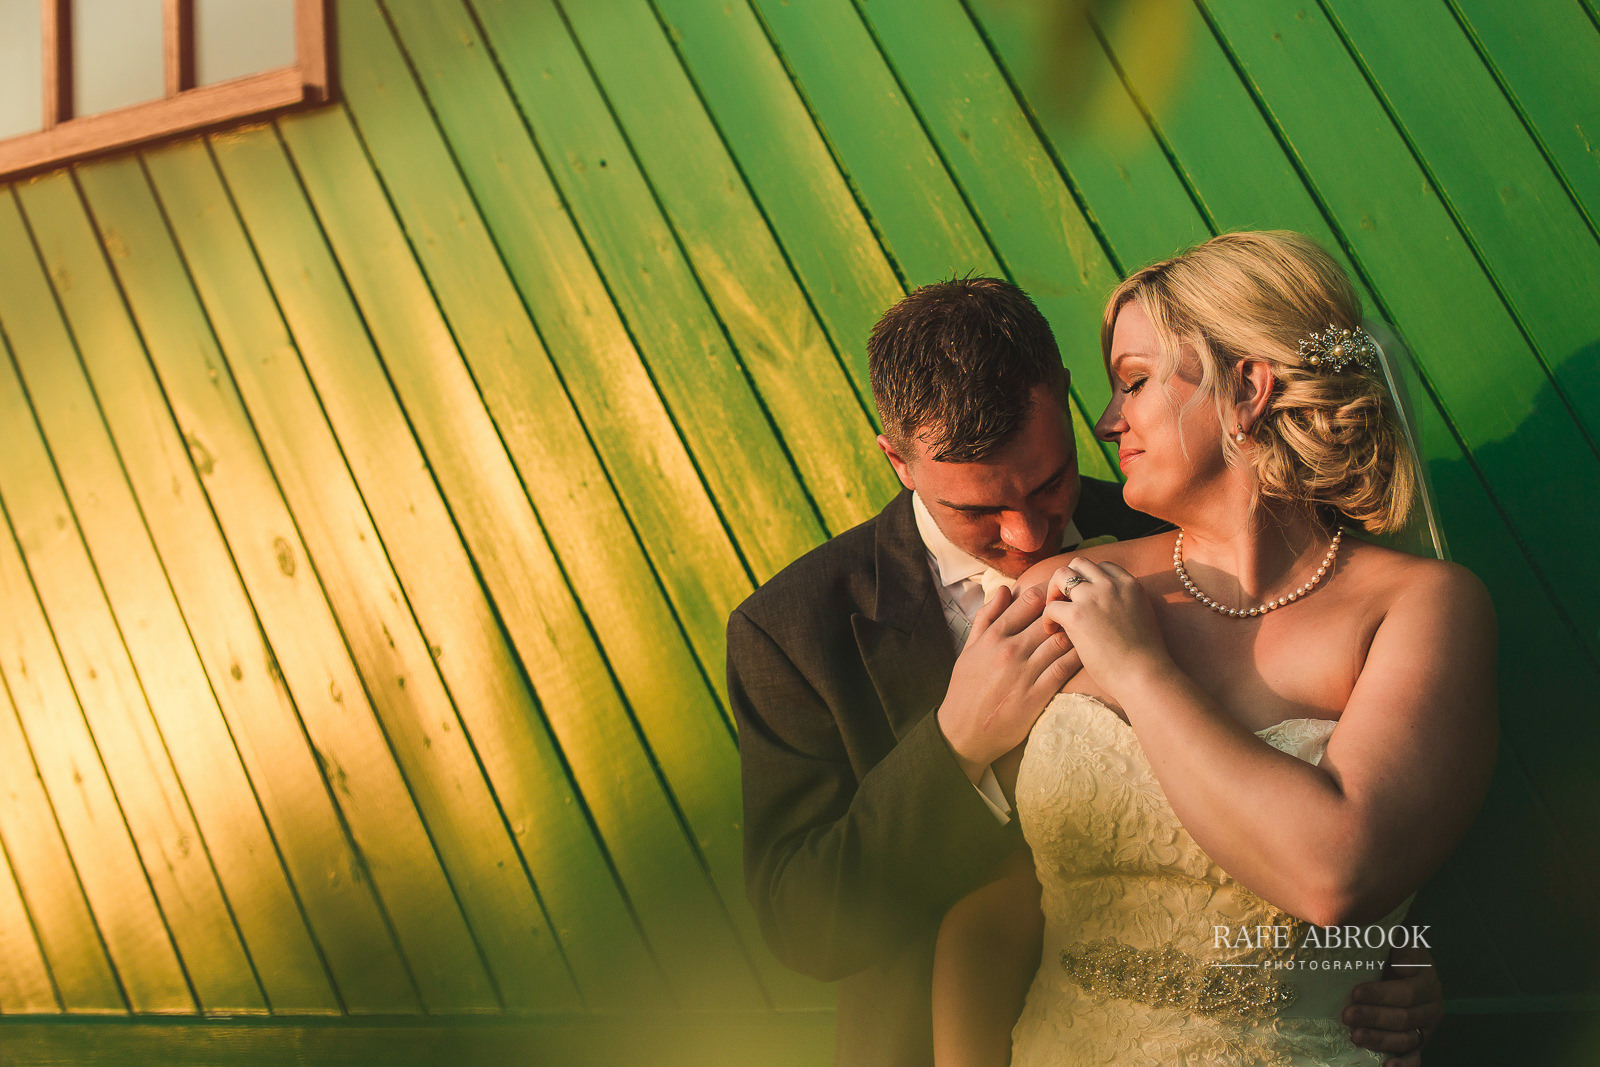 south farm wedding royston hertfordshire wedding photographer rafe abrook photography-1932.jpg